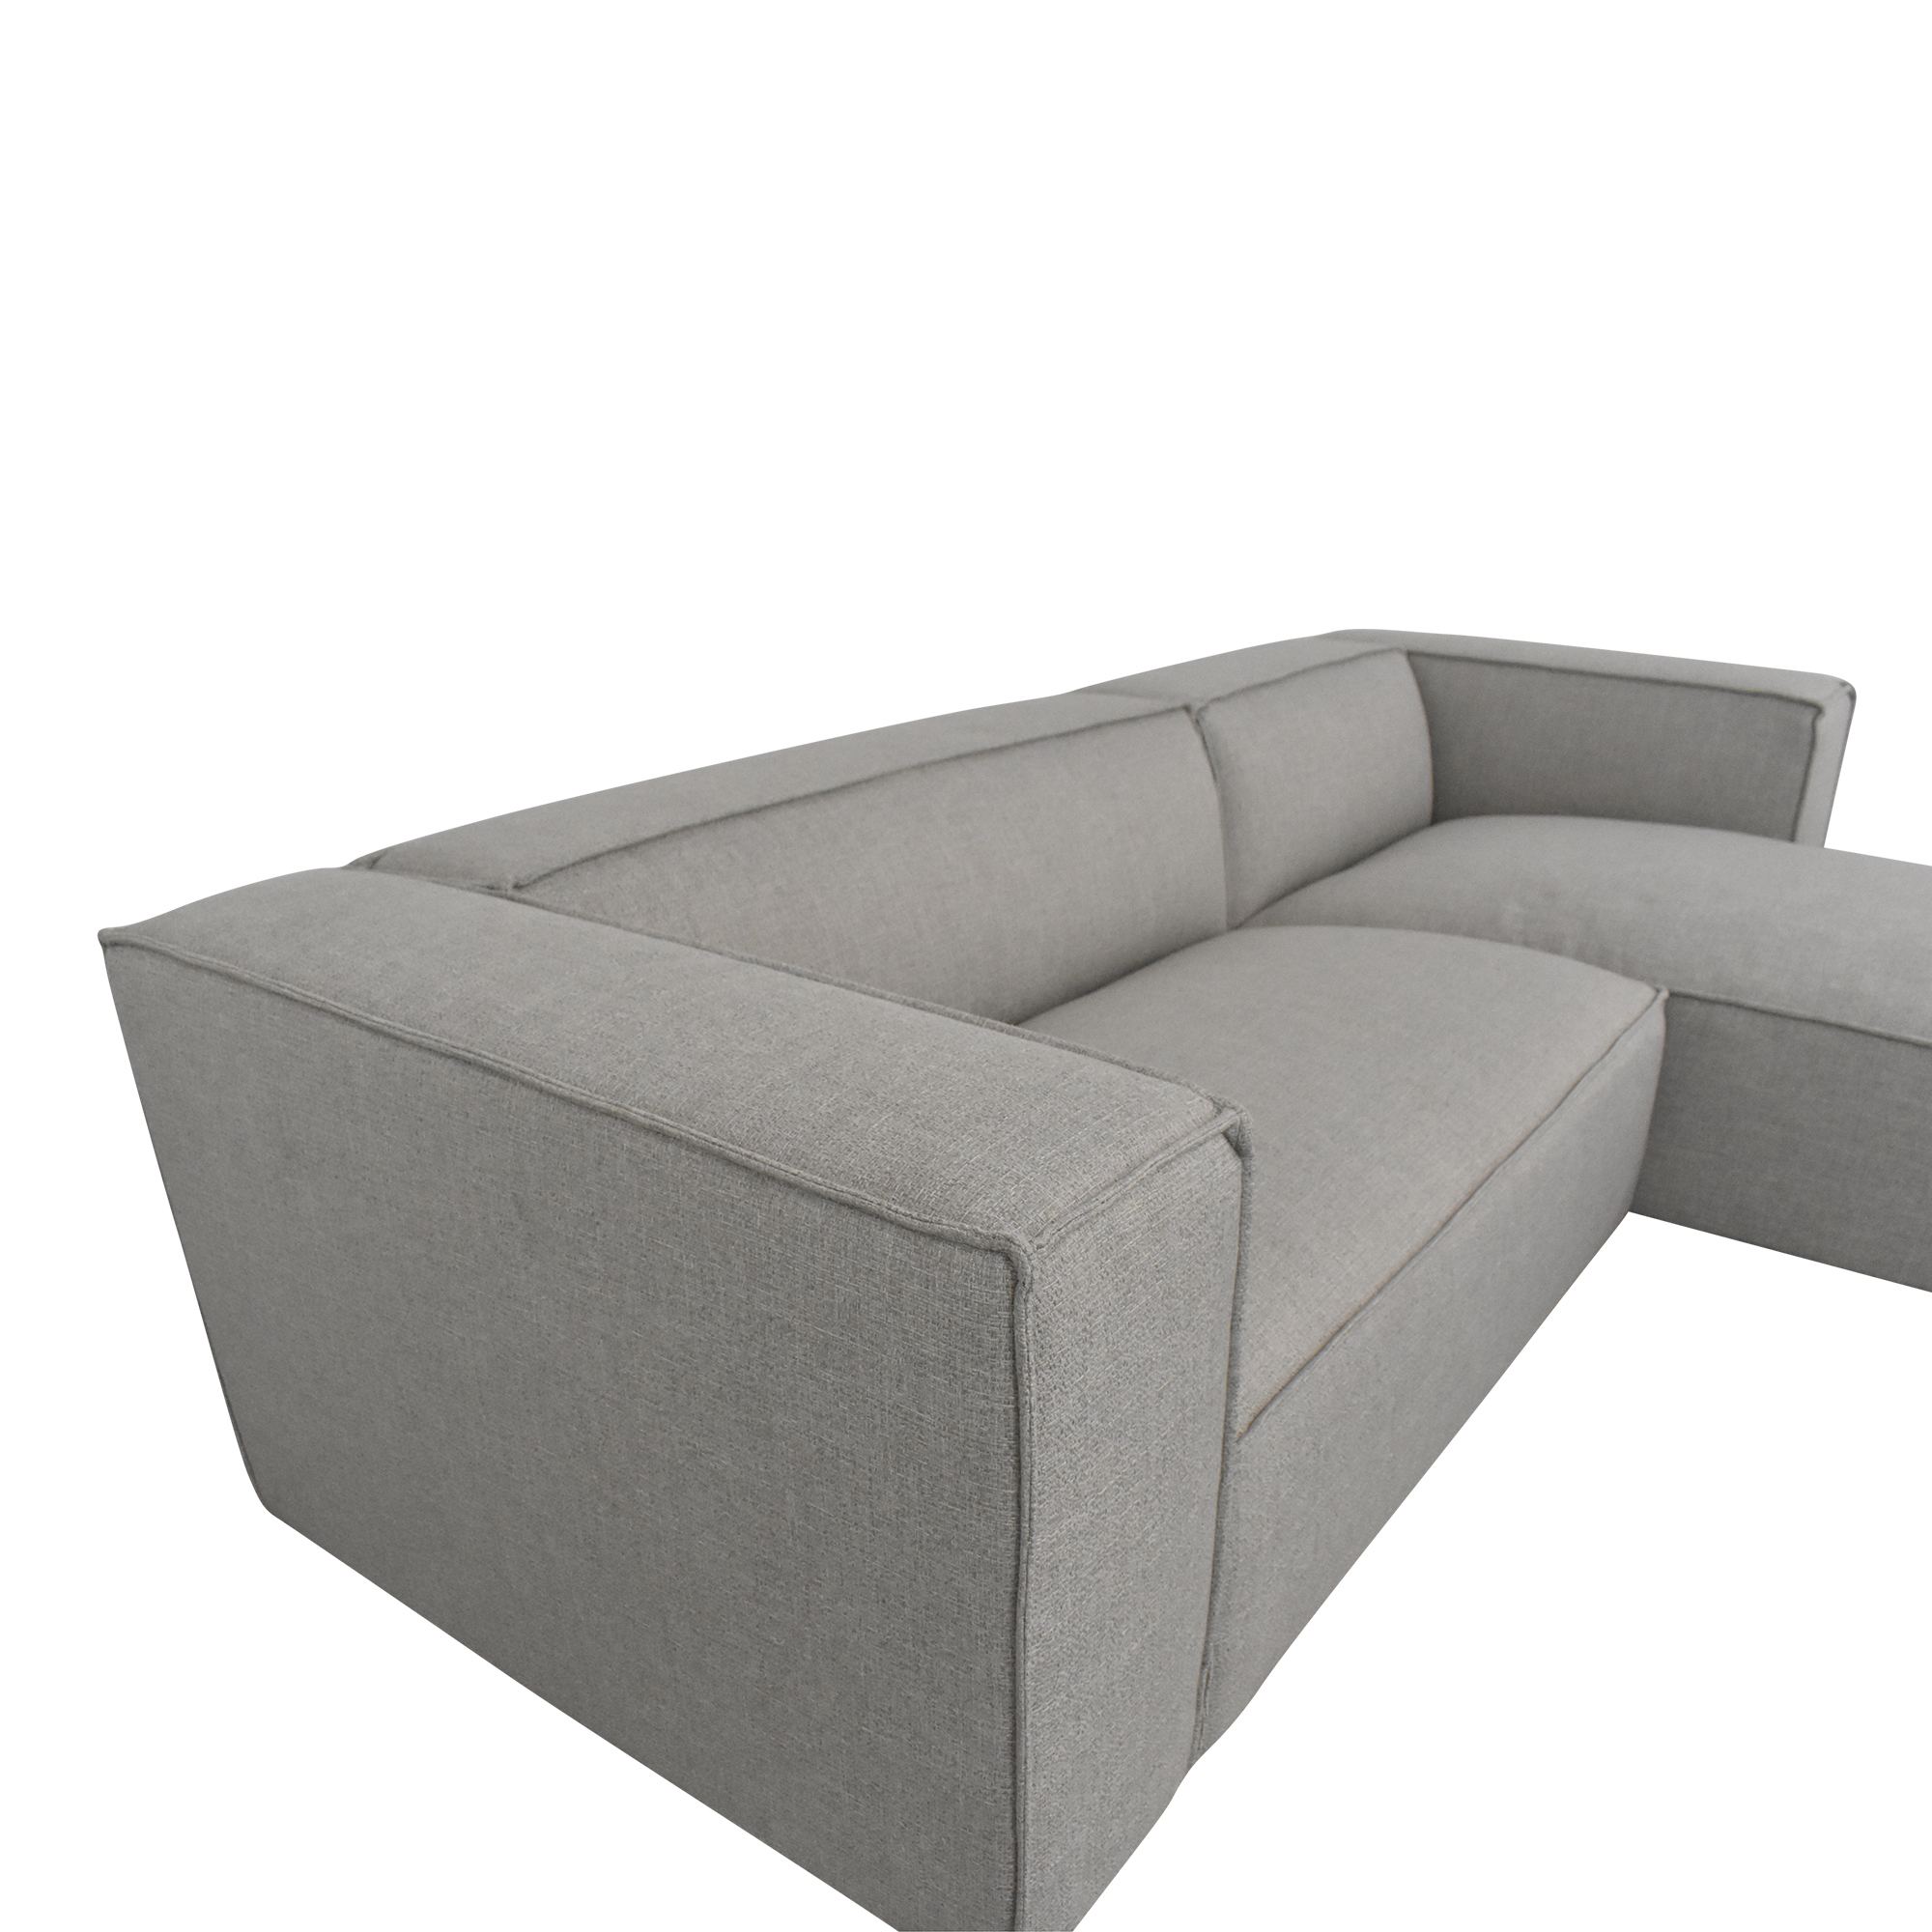 Interior Define Interior Define Gray Sectional Sofa with Chaise discount